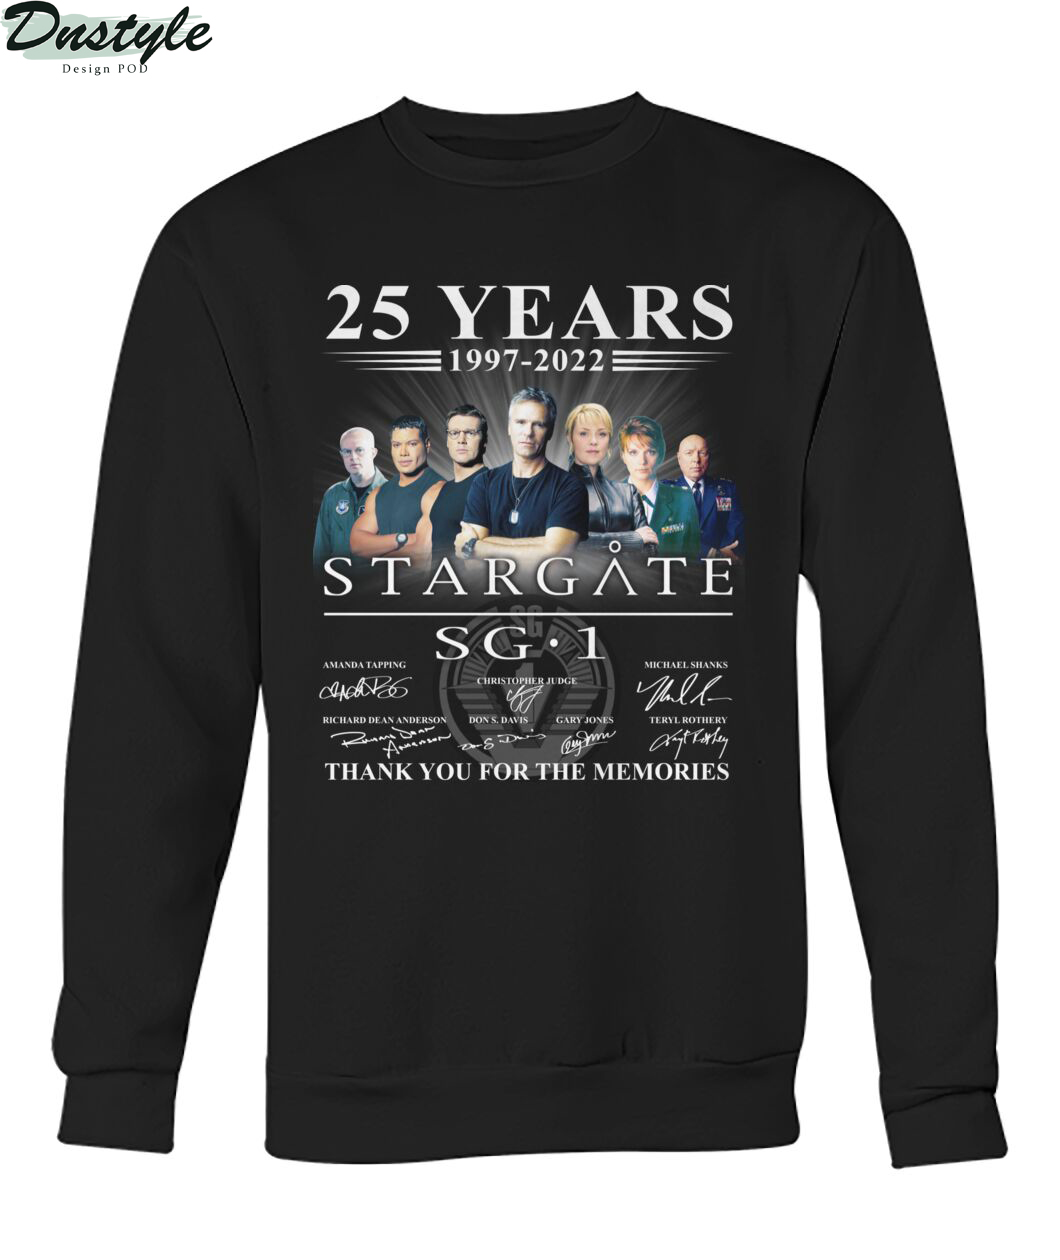 Stargate SG-1 25 years 1977-2021 thank you for the memories sweatshirt